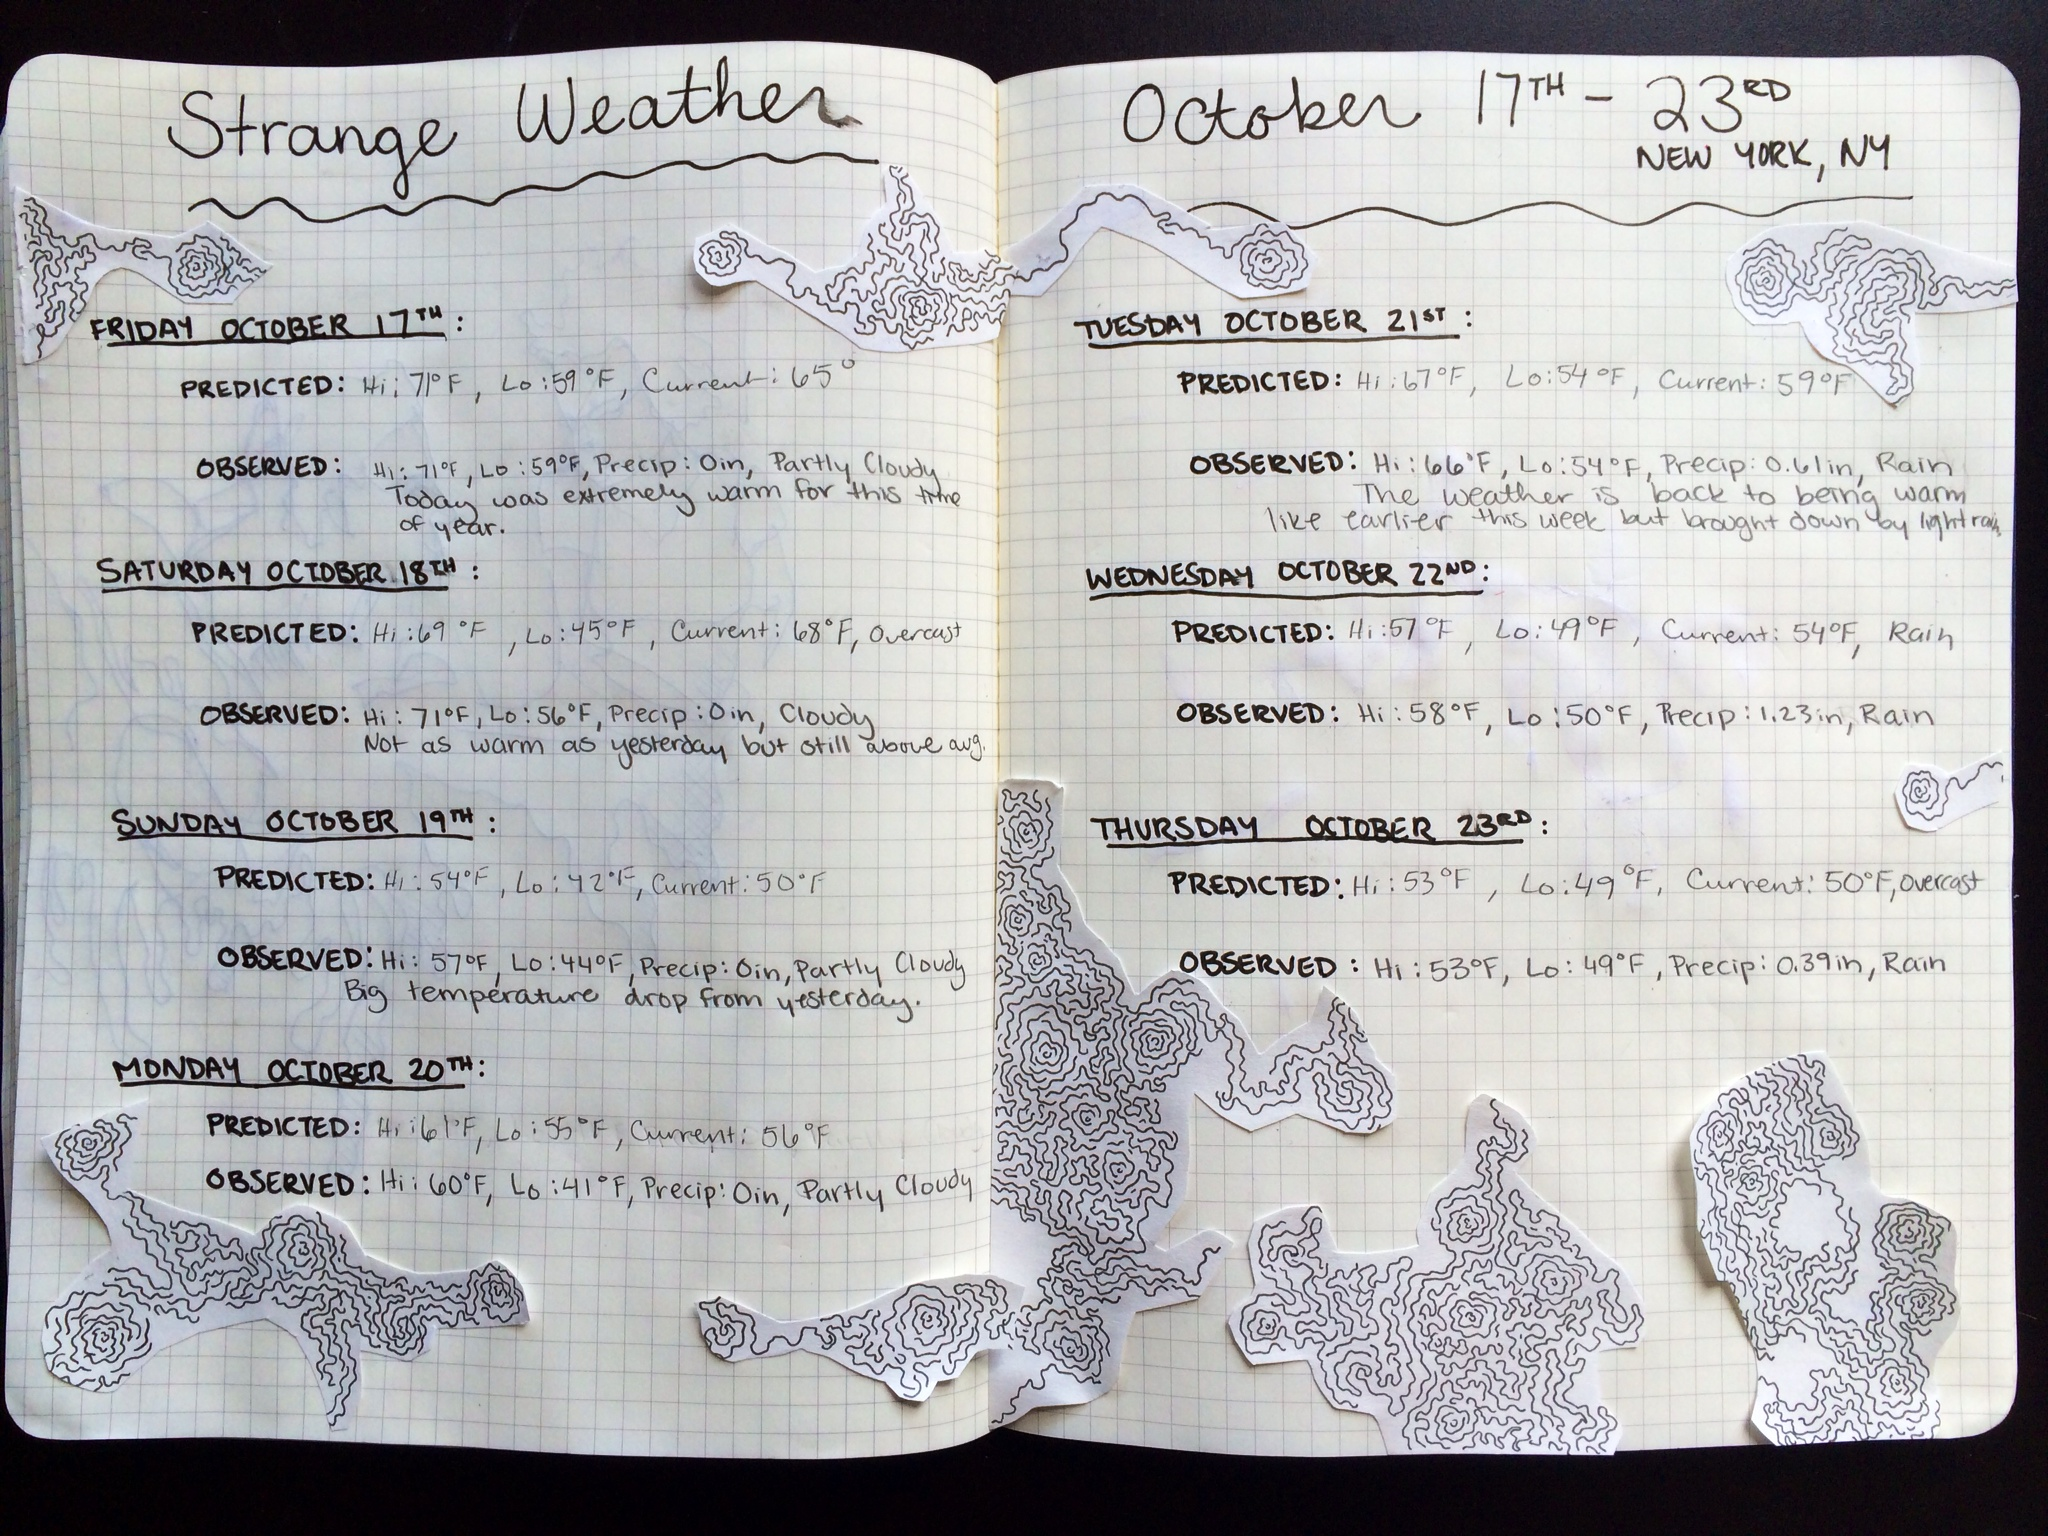 OBSERVING CHANGE: FIELD NOTEBOOKS (FNBK)